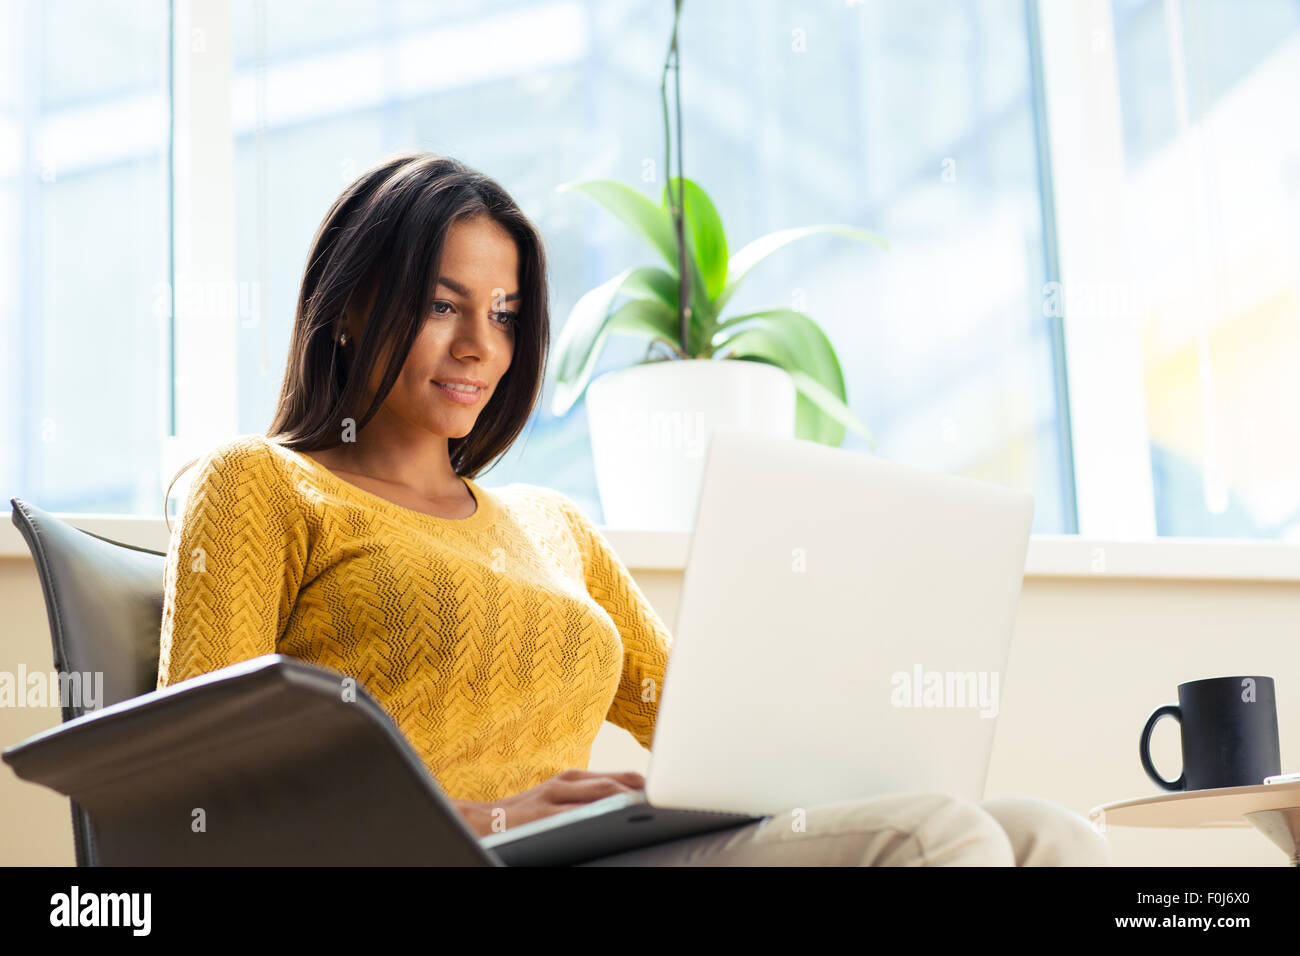 Happy casual businesswoman sitting on office chair with laptop in office Photo Stock